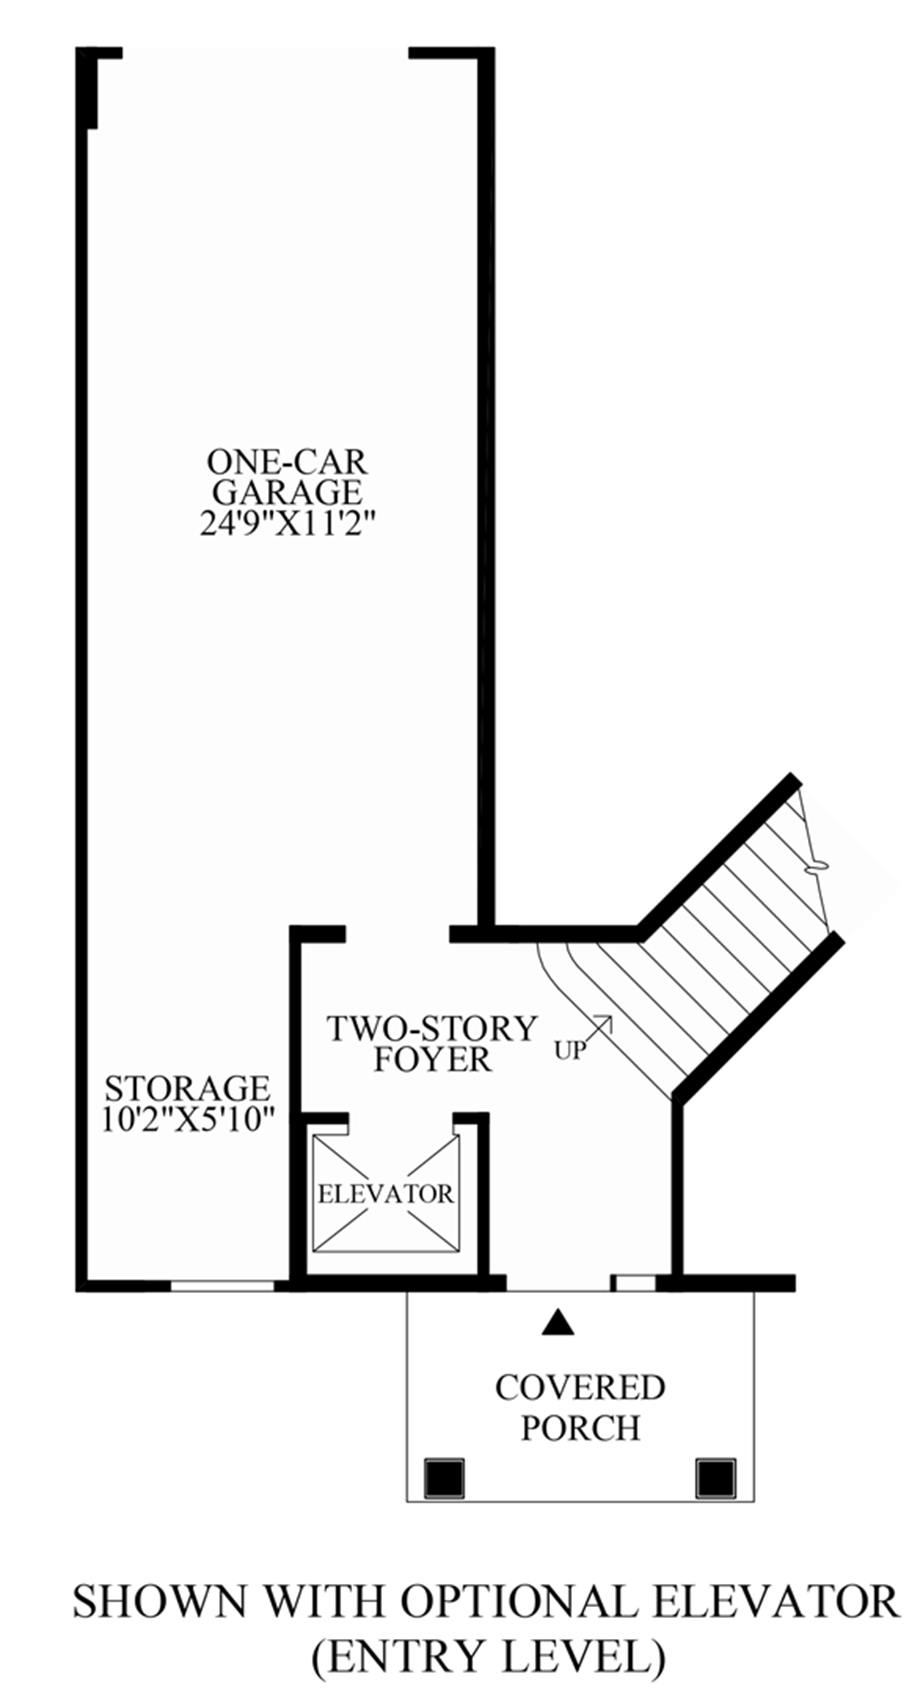 Optional Elevator (Entry Level) Floor Plan